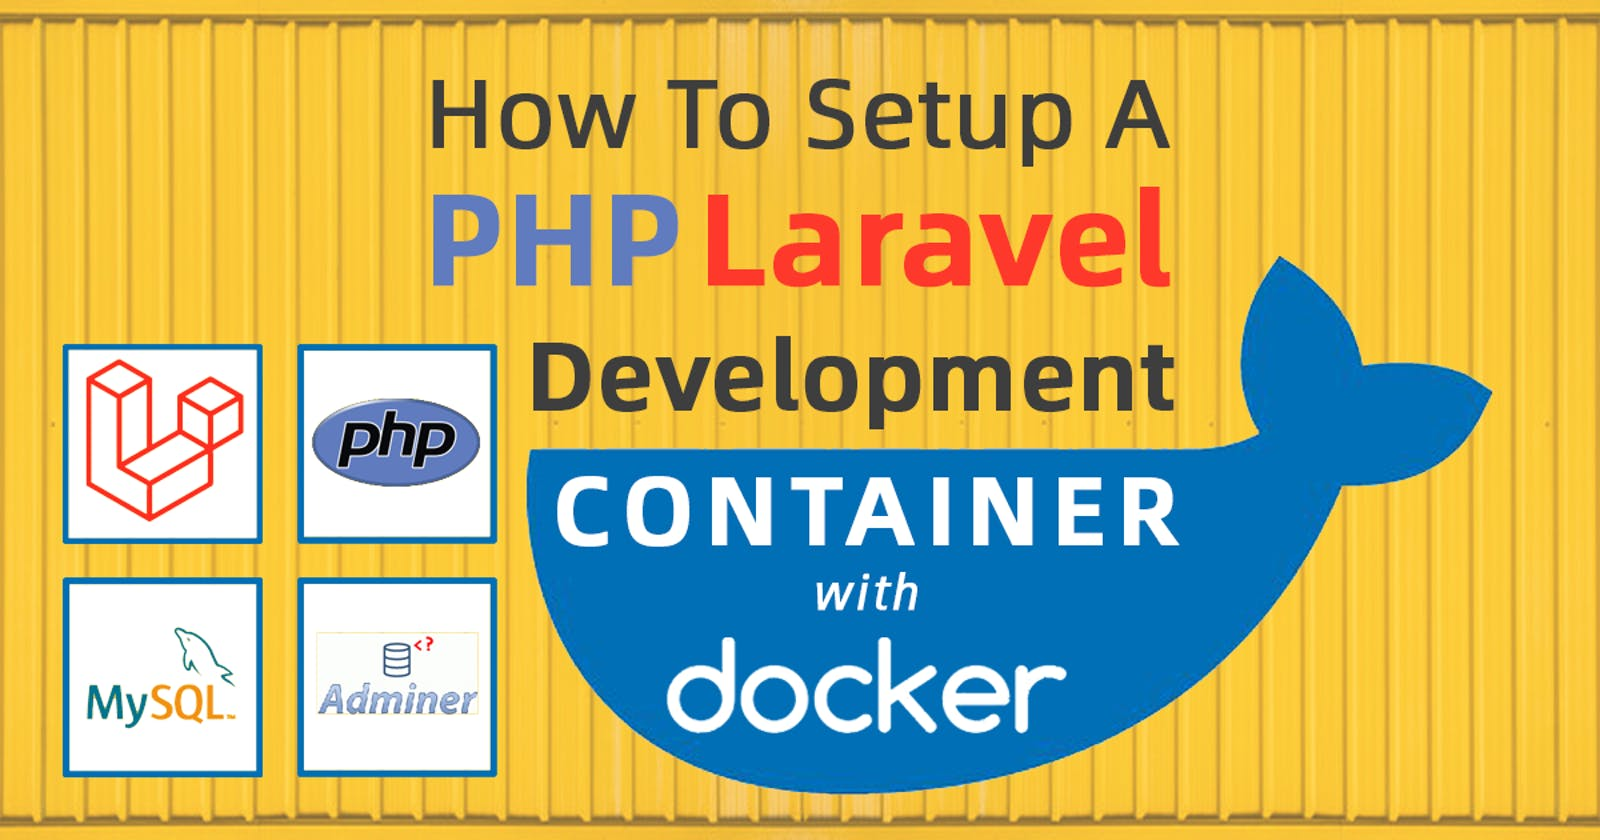 How To Setup A PHP Laravel Development Container With Docker